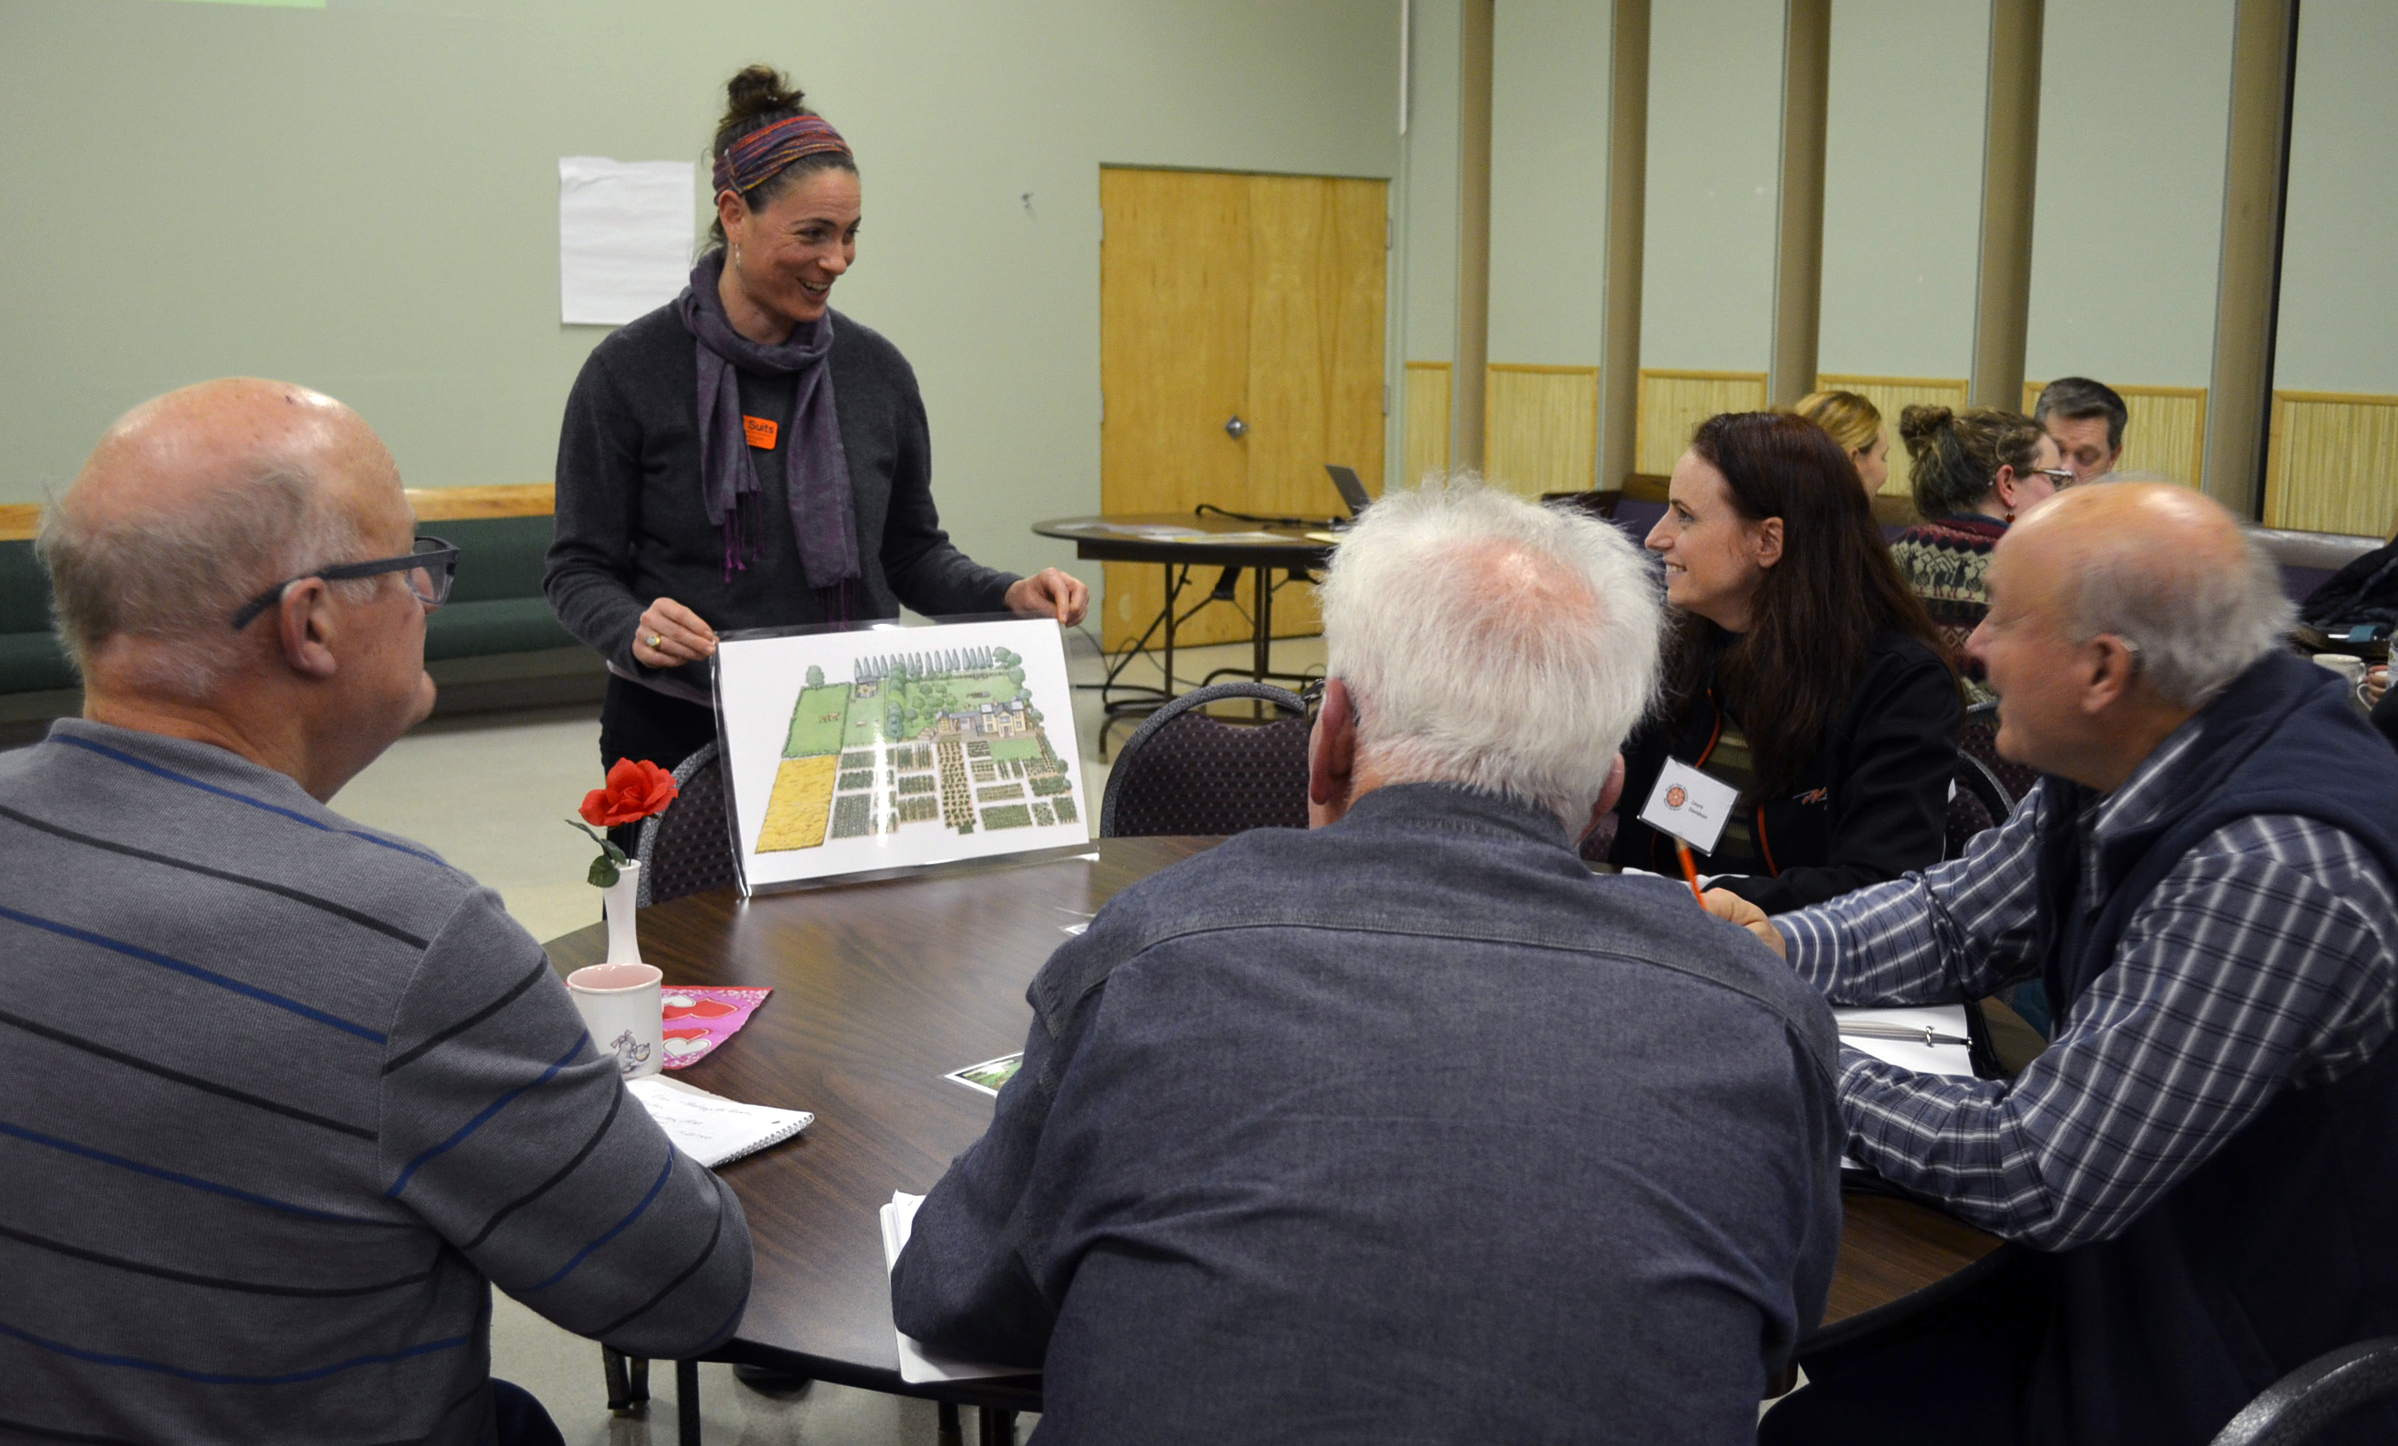 Woman leads discussion about a garden map with a group of community members at an educational event